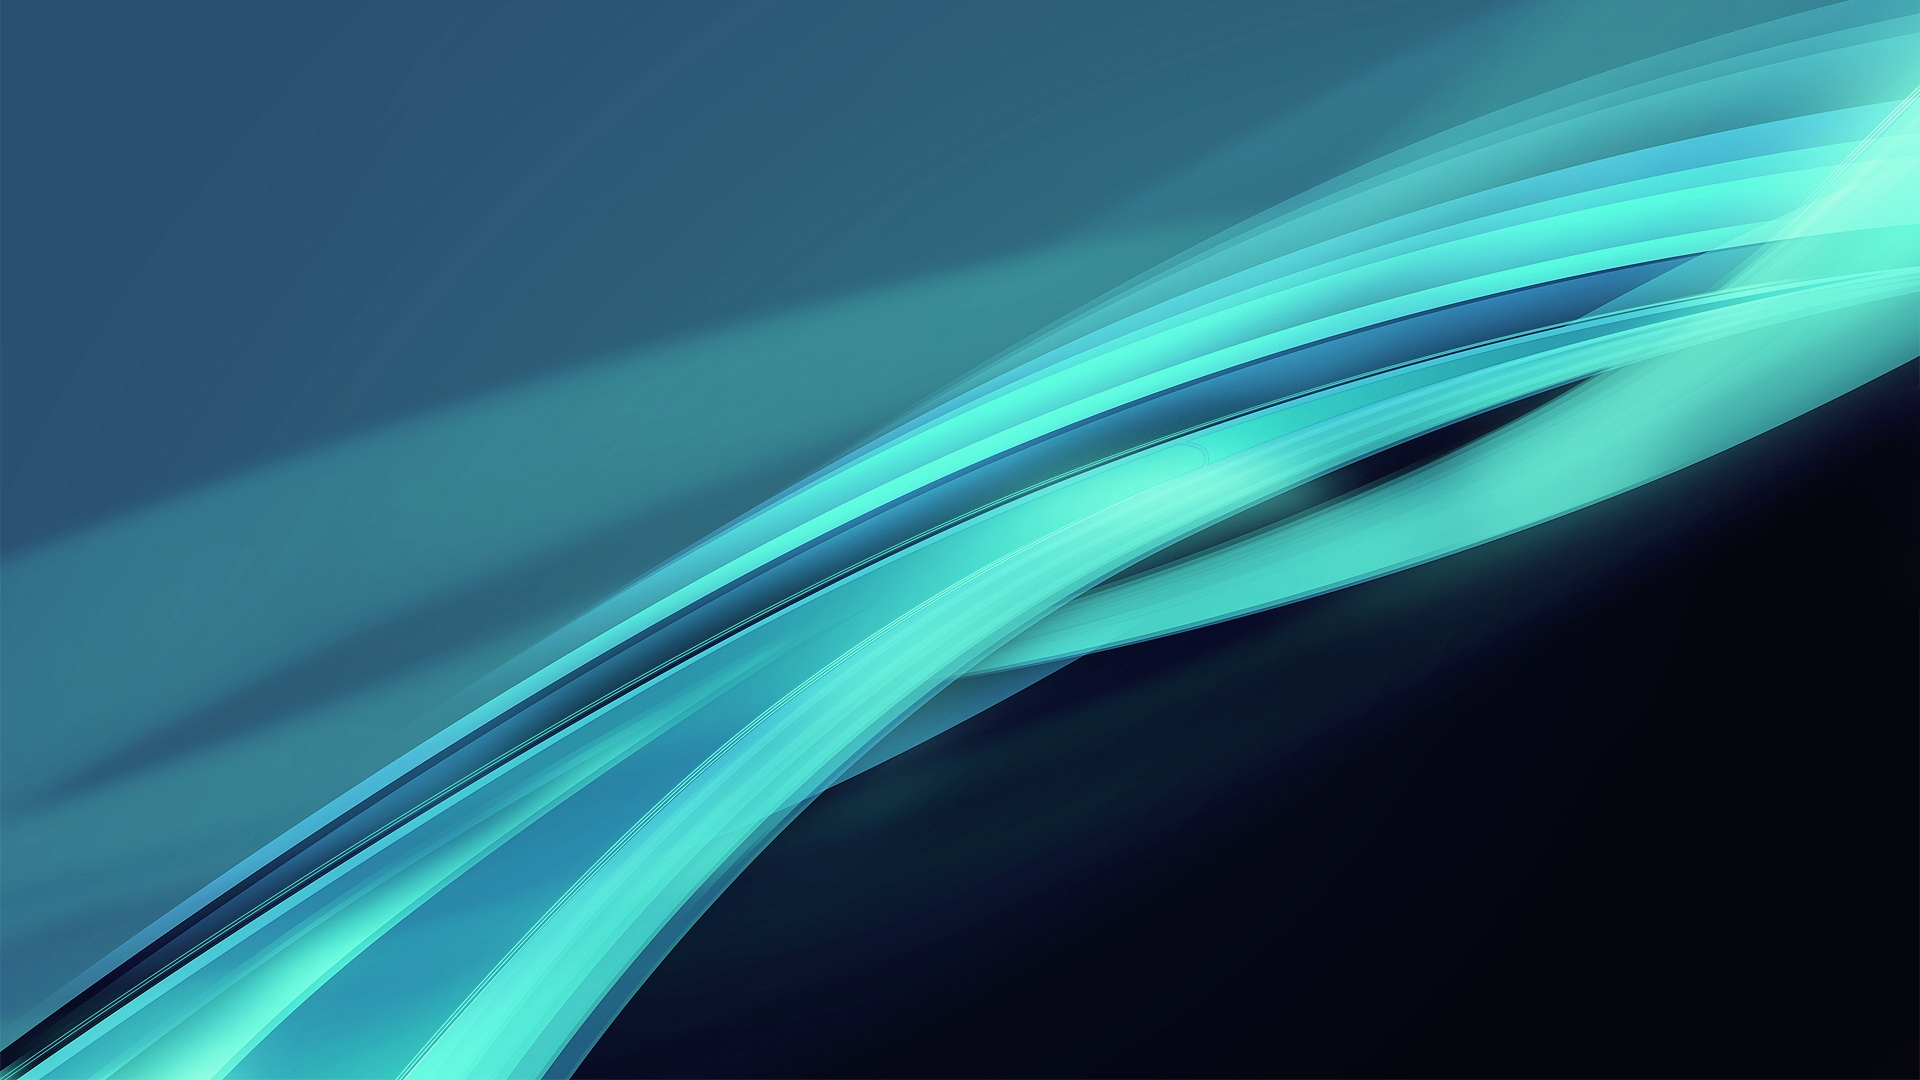 turquoise abstract computer wallpaper - photo #12